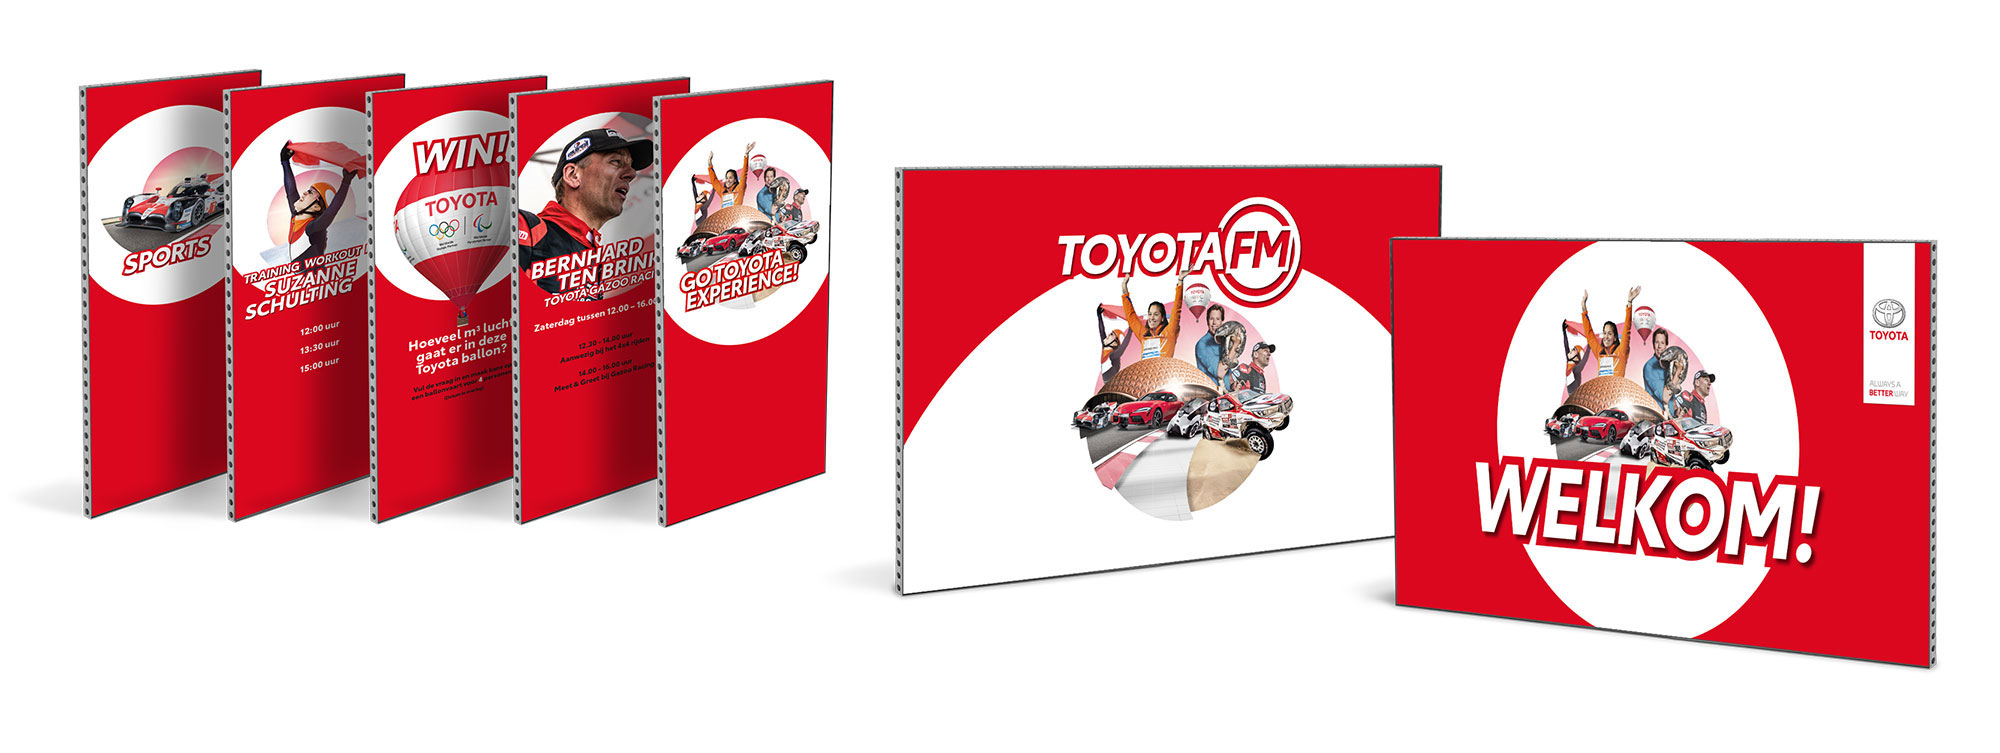 GO Toyota Experience 2019 - banners